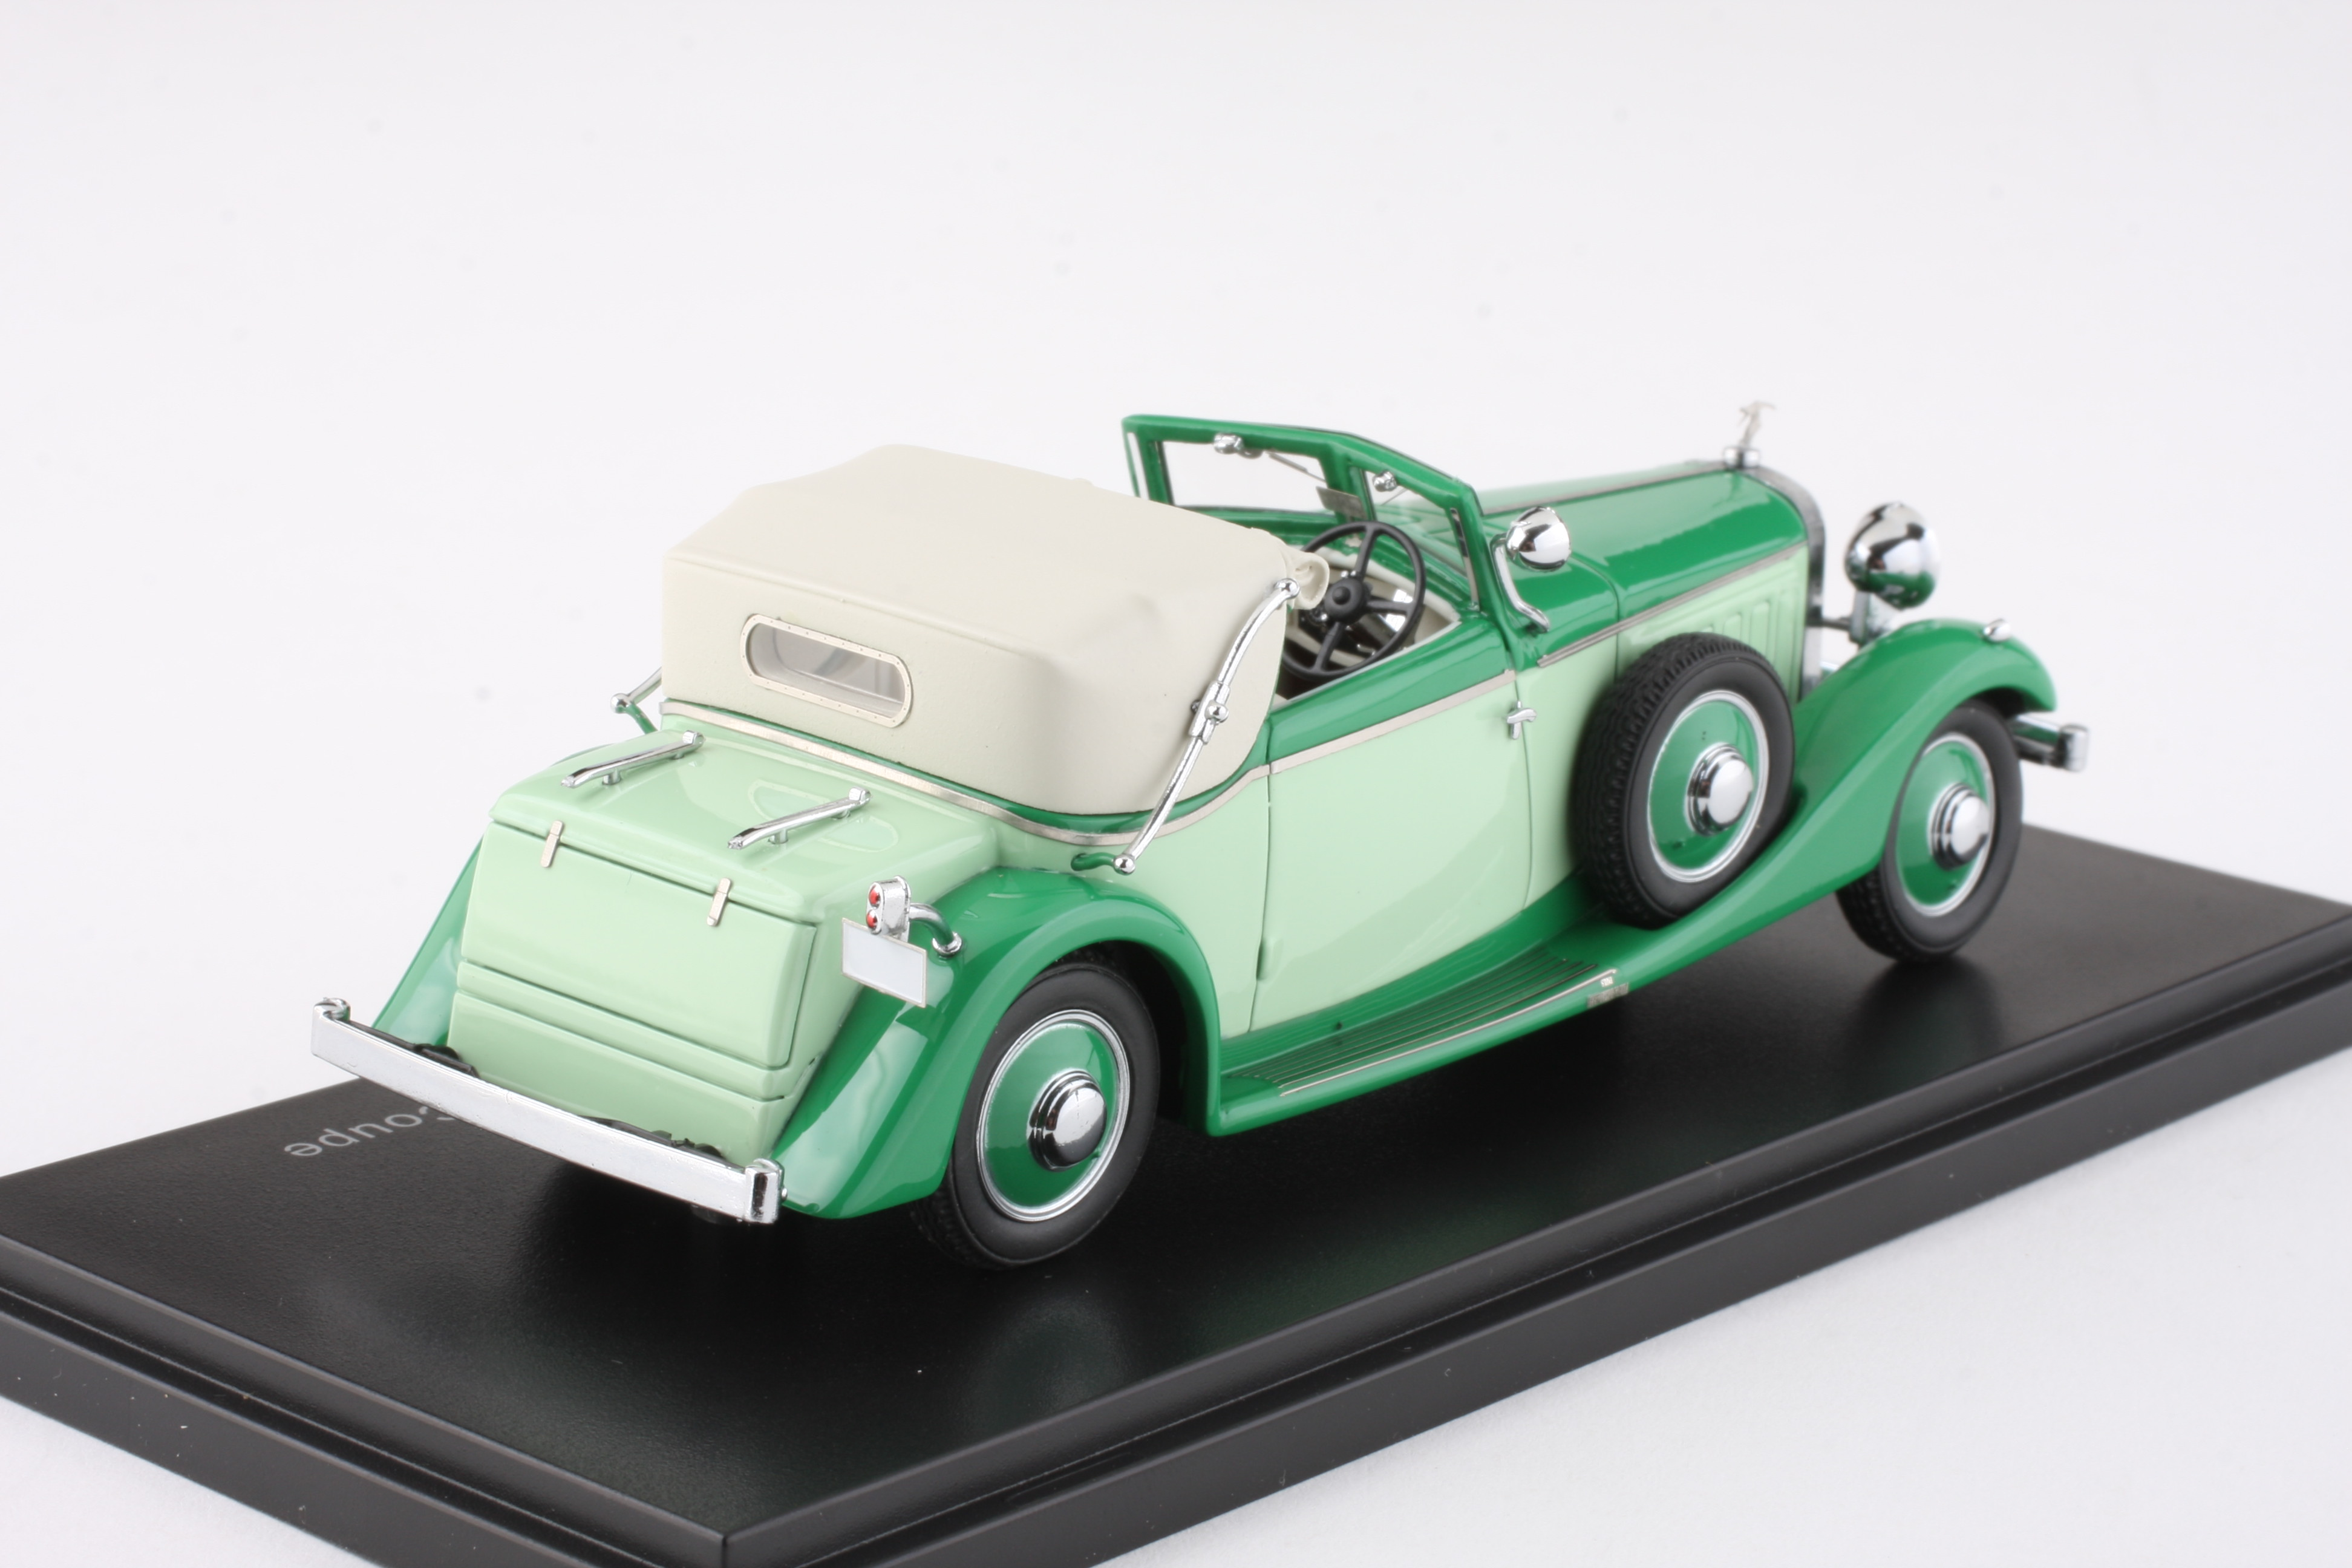 EMEU43001A - 1.43 Hispano Suiza J12 Three position Drophead Coupe by Fernandez and Darrin in Green Resin Model Car Diecast Model Car Sales 1:43 scale